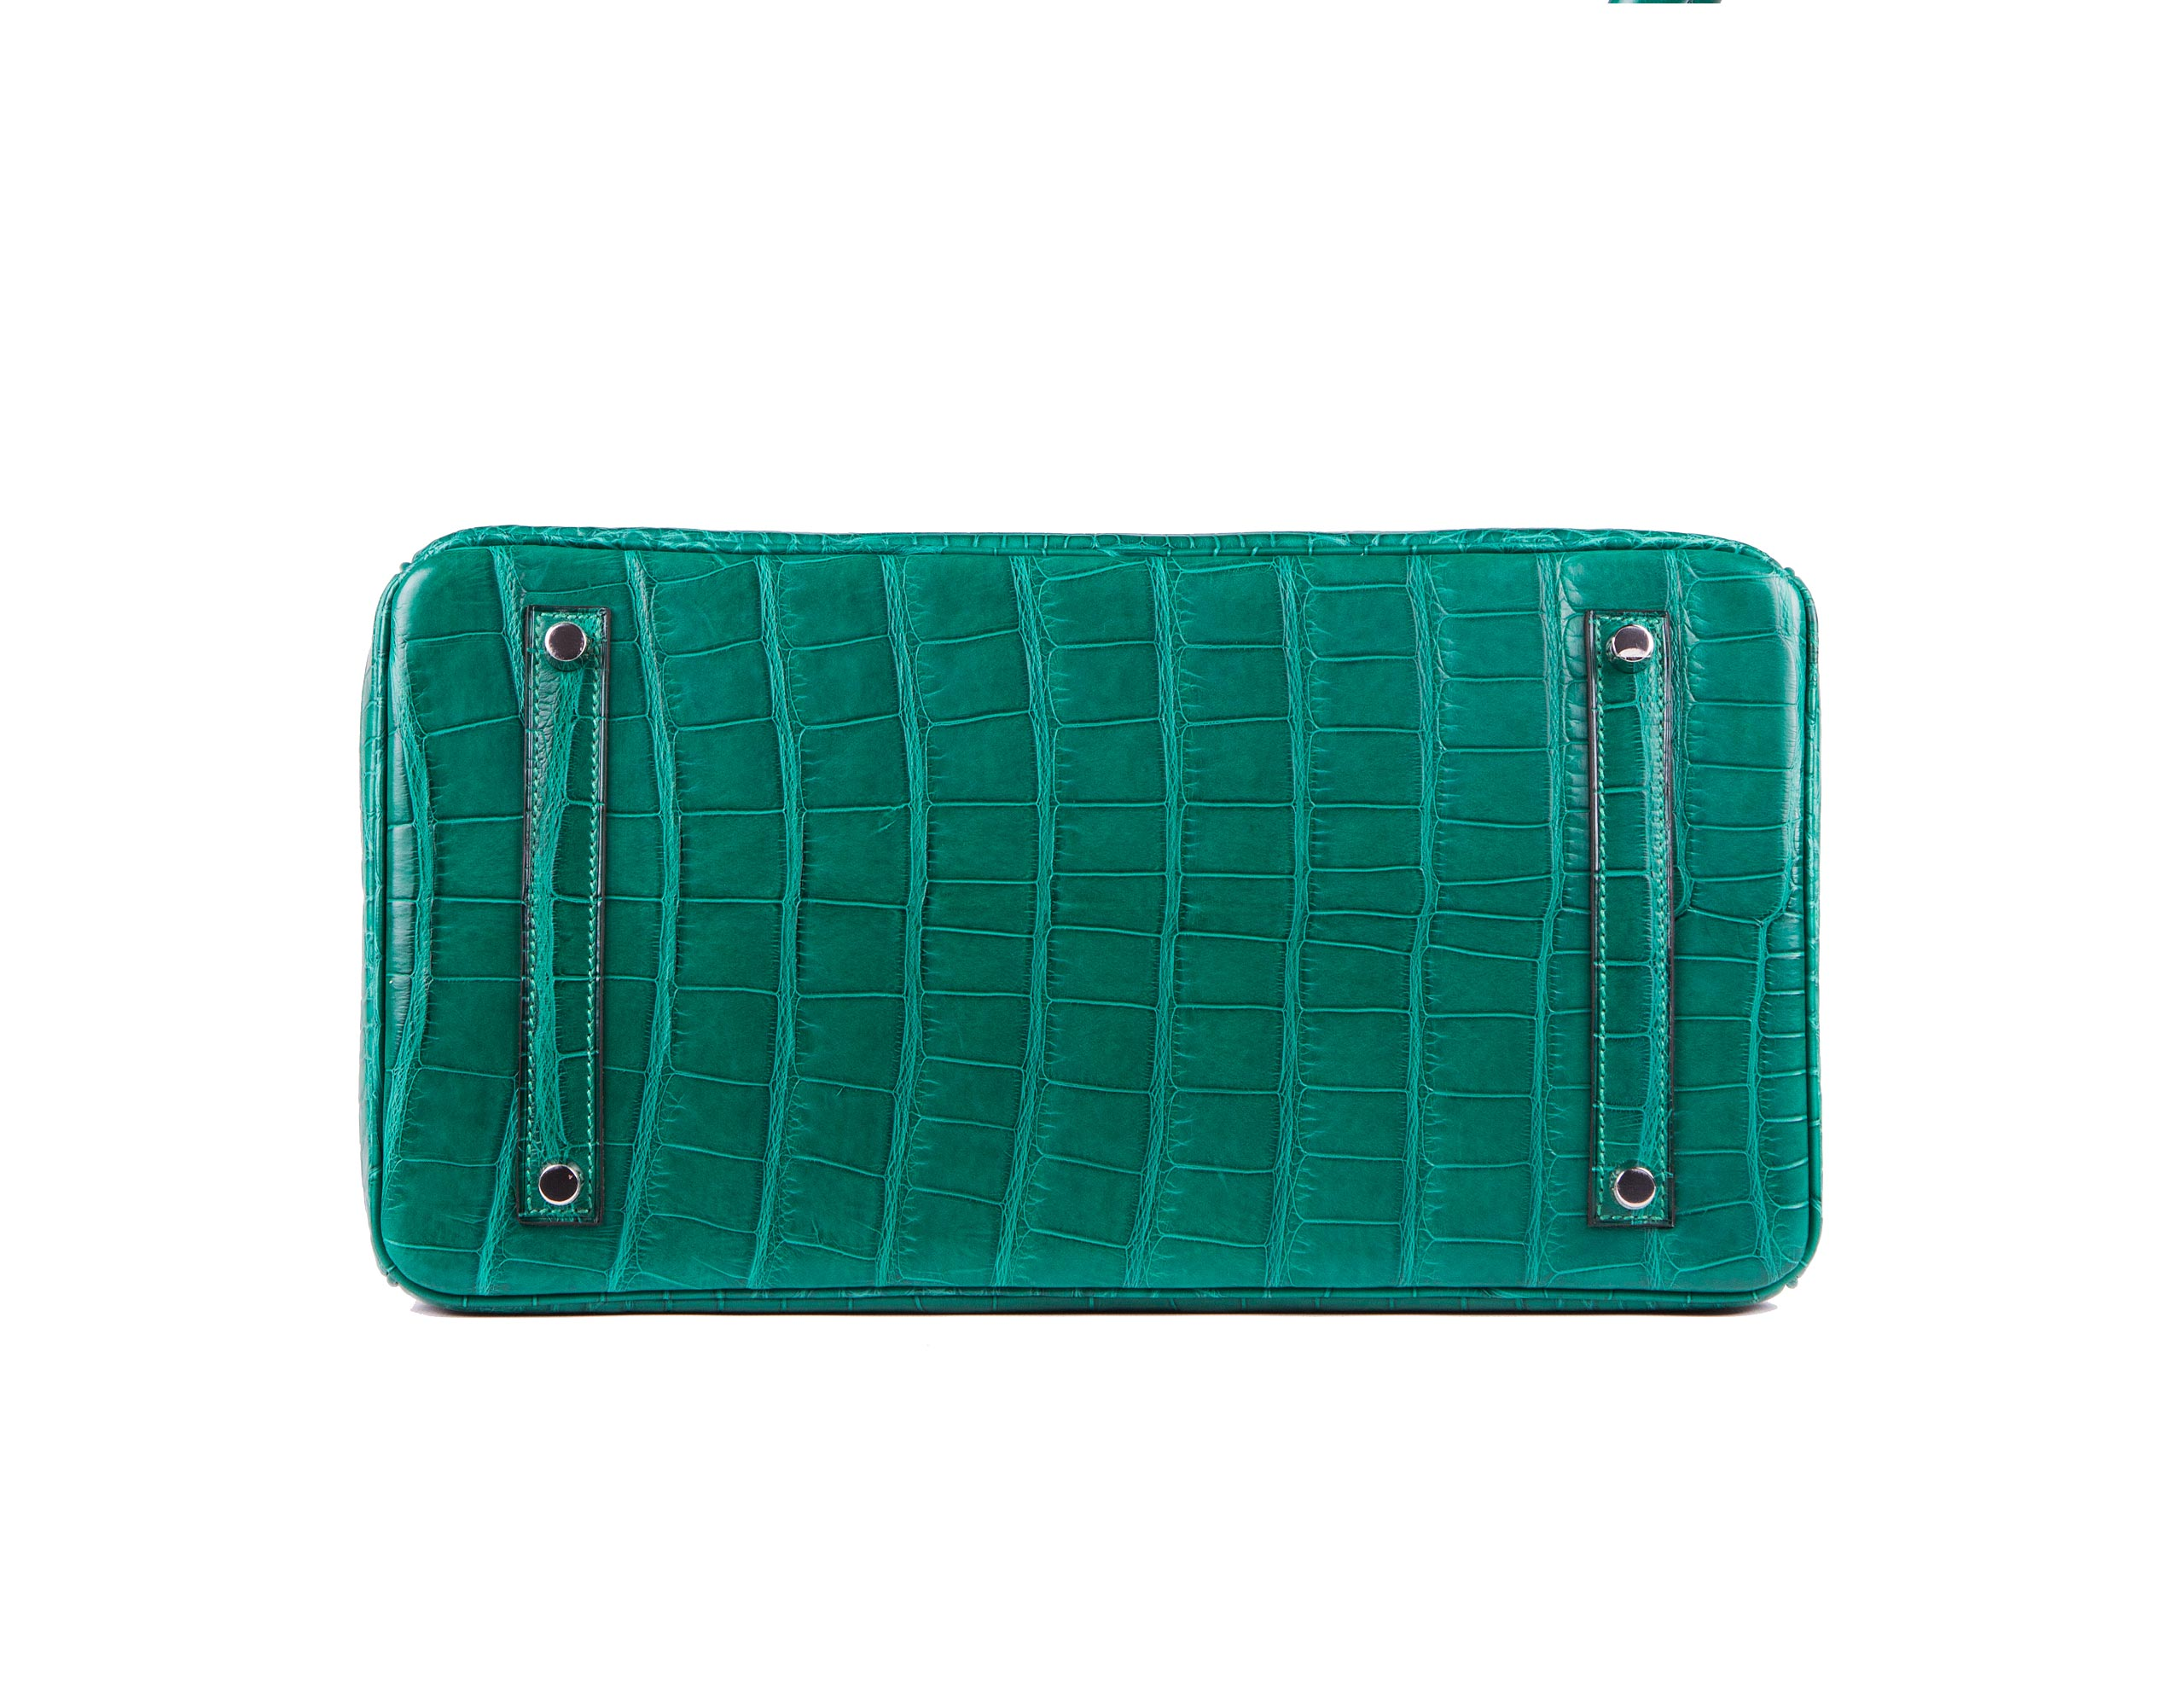 Hermes Bag Birkin Malachite Matt Alligator 35cm B118 Base